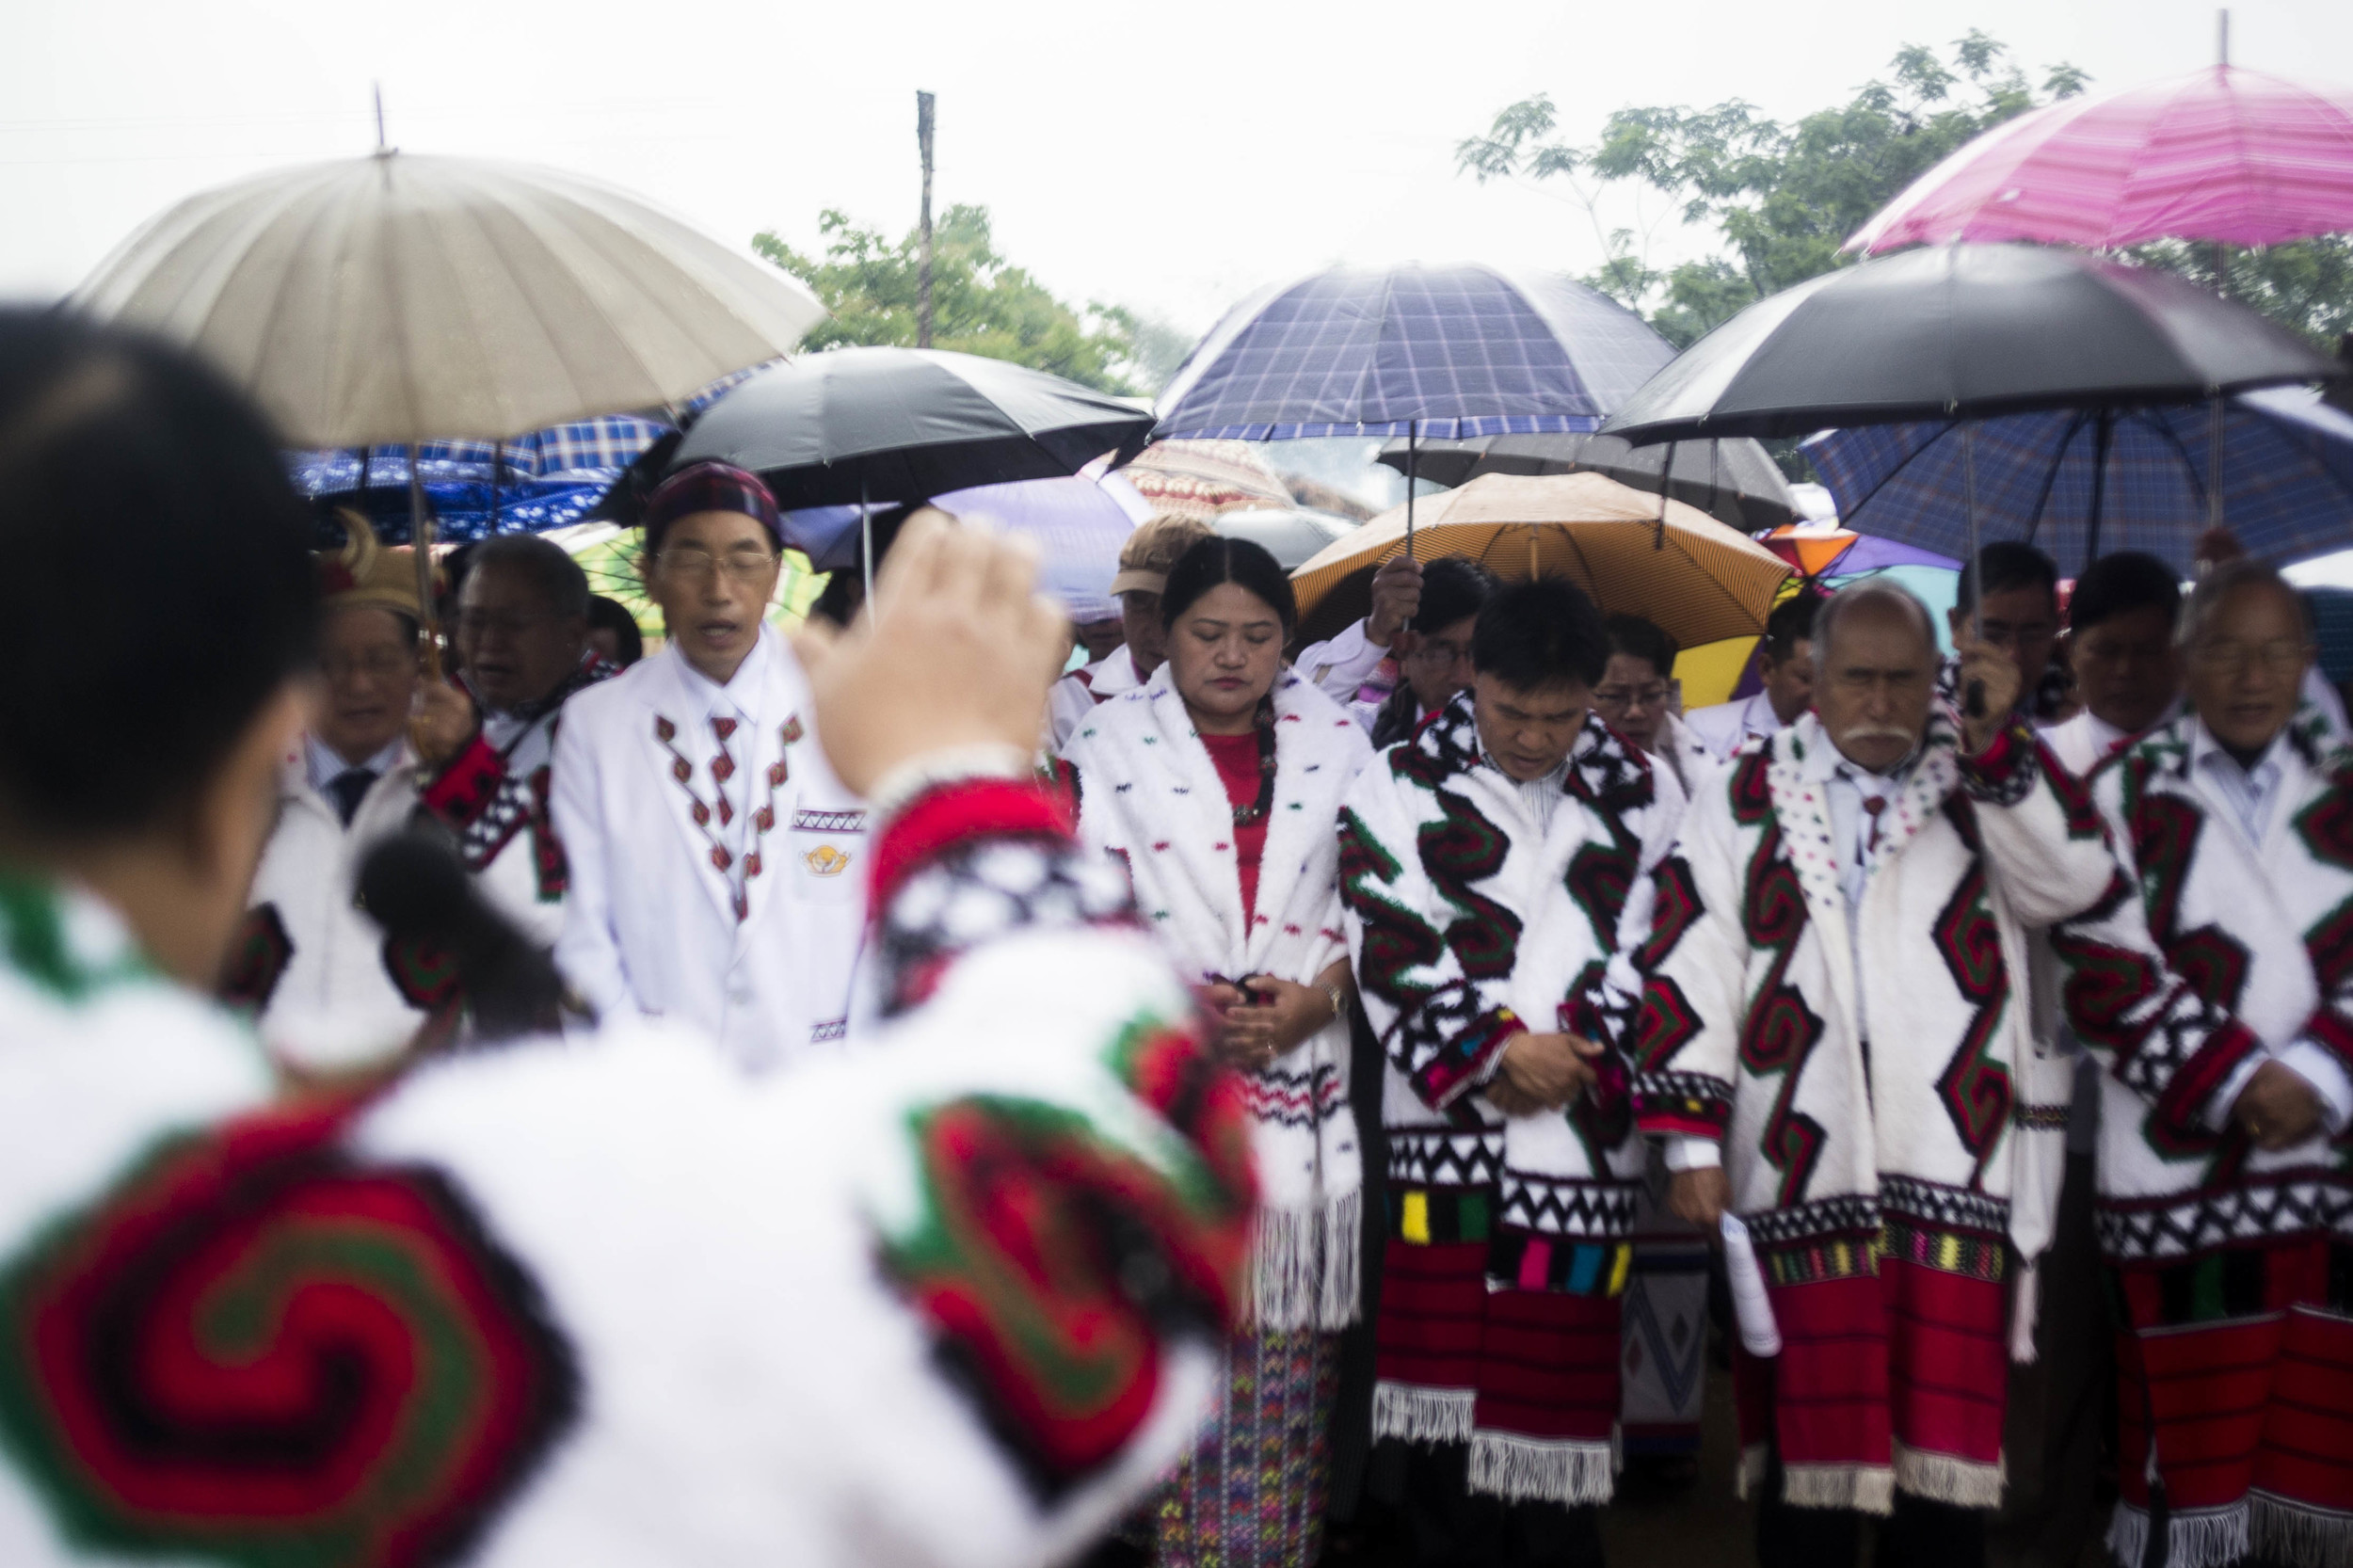 Rawang elders lead a prayer before the festival starts. Photo by Ann Wang